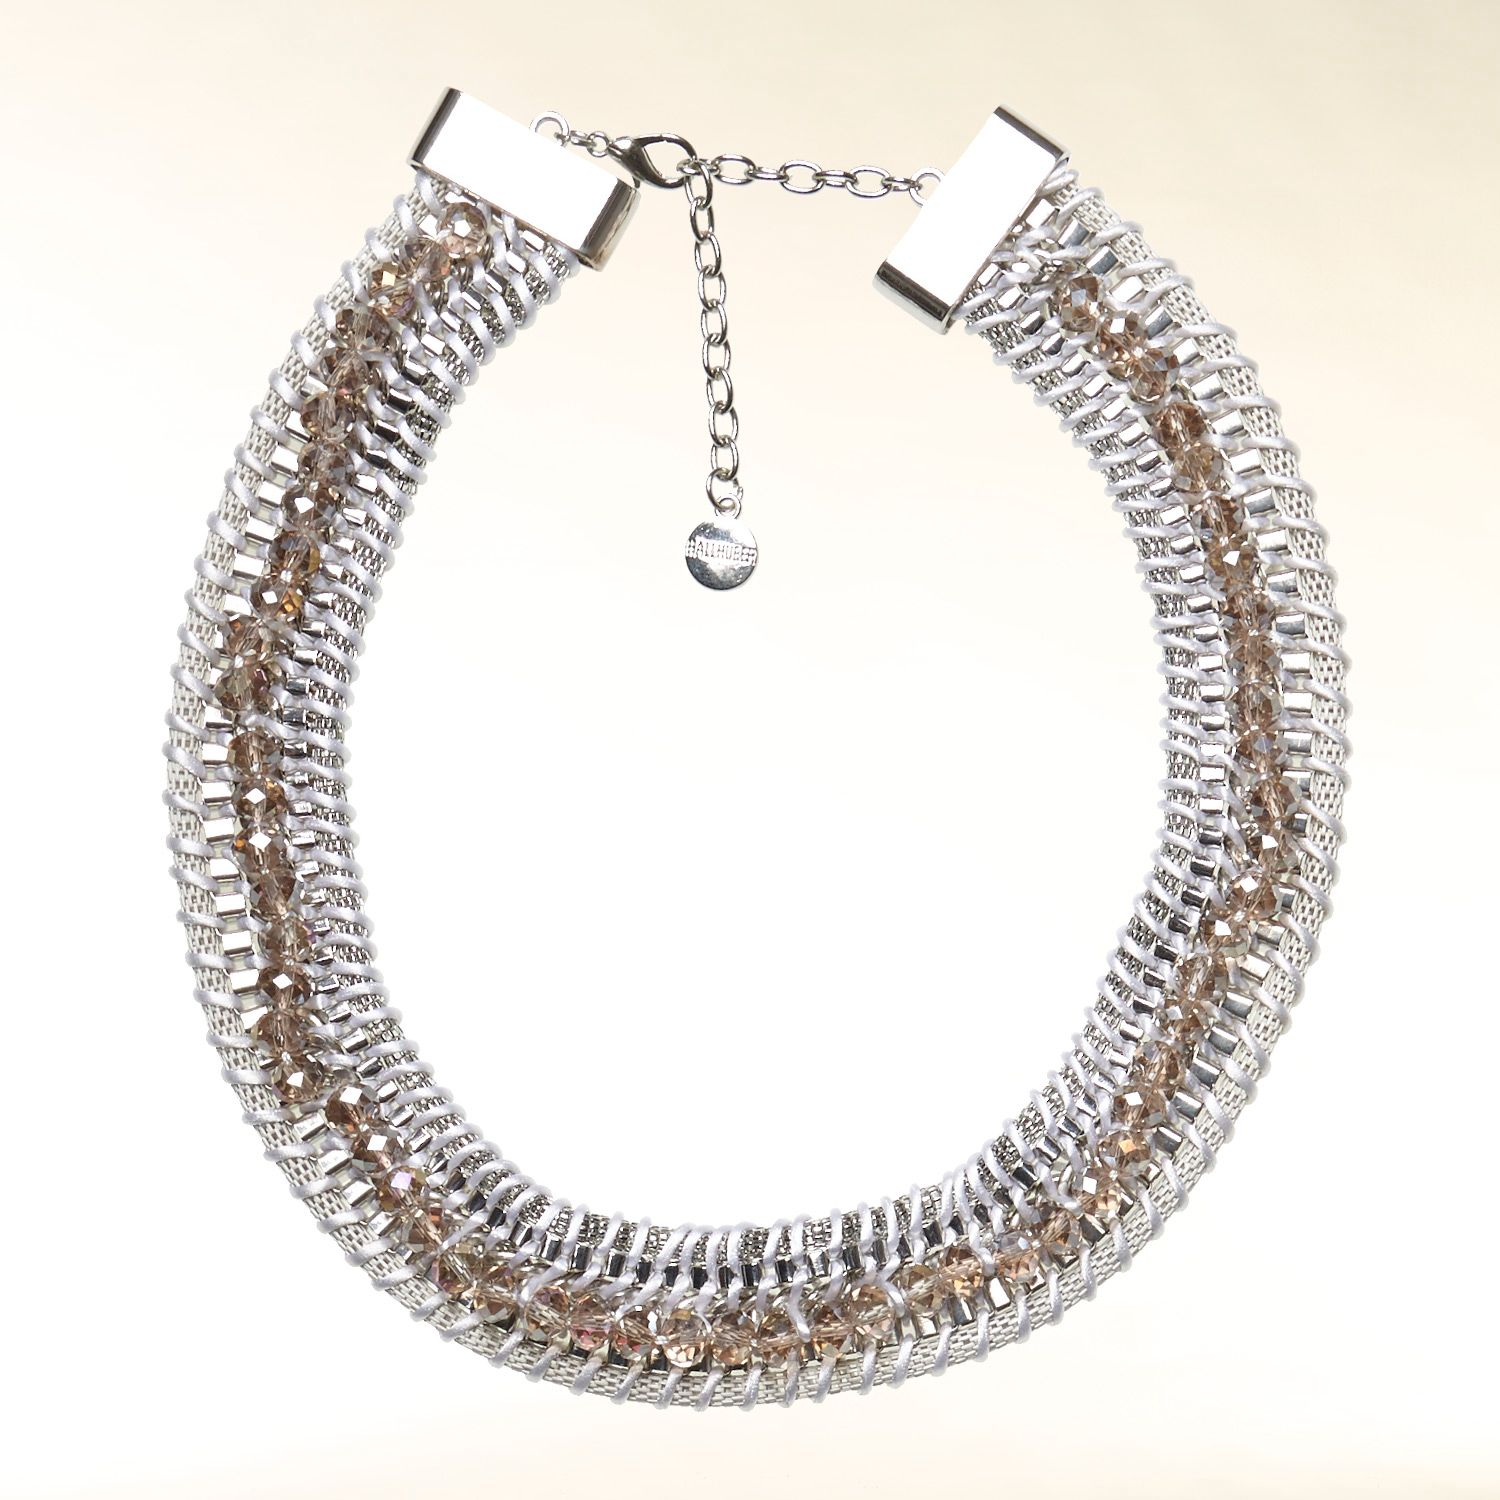 Chain and ribbon necklace